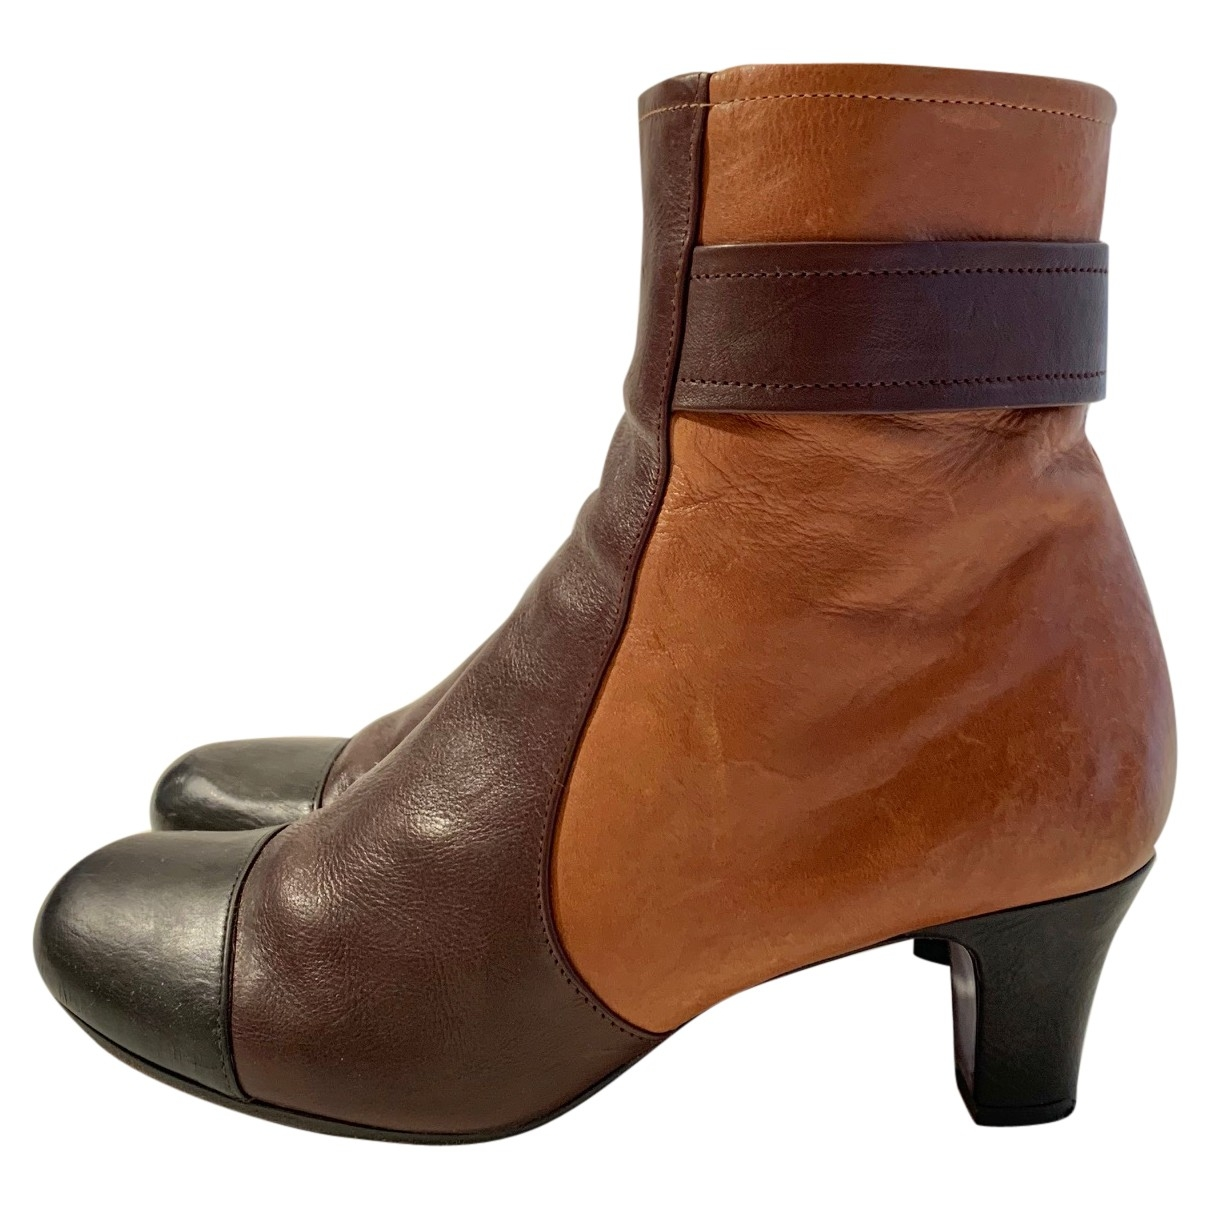 Chie Mihara \N Brown Leather Ankle boots for Women 39 EU